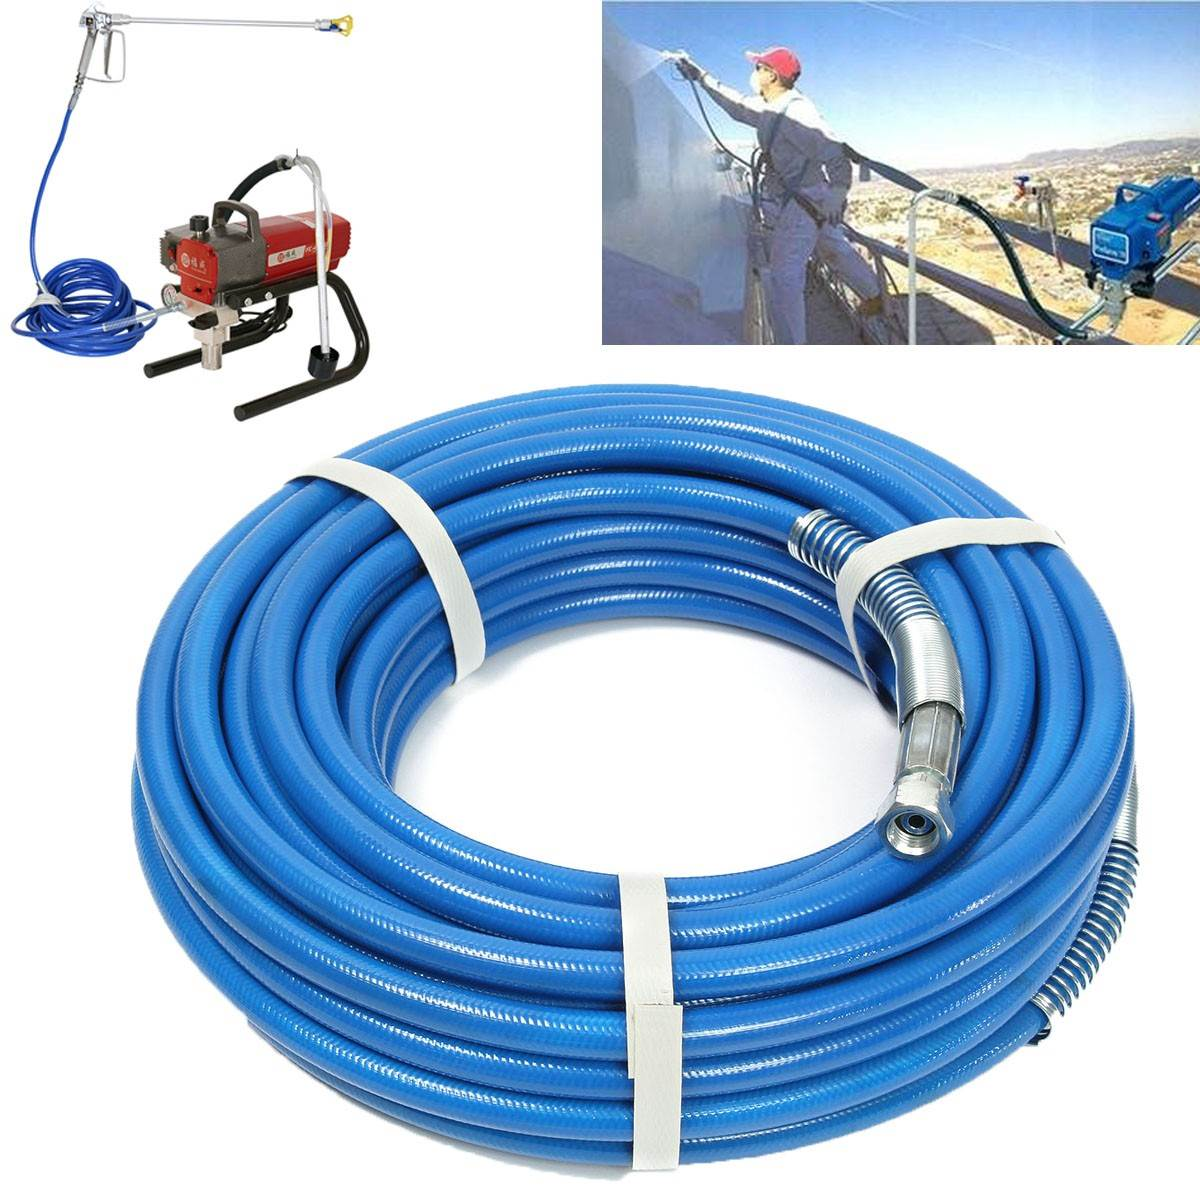 15m Airless Hose 5000PSI High Pressure Pipe Airless sprayer Airless Paint Hose For Sprayer Gun Sprayer Water 13m 5000psi high pressure pipe airless paint hose 50 x 1 4 sprayer airless paint hose for spray guns sprayer water